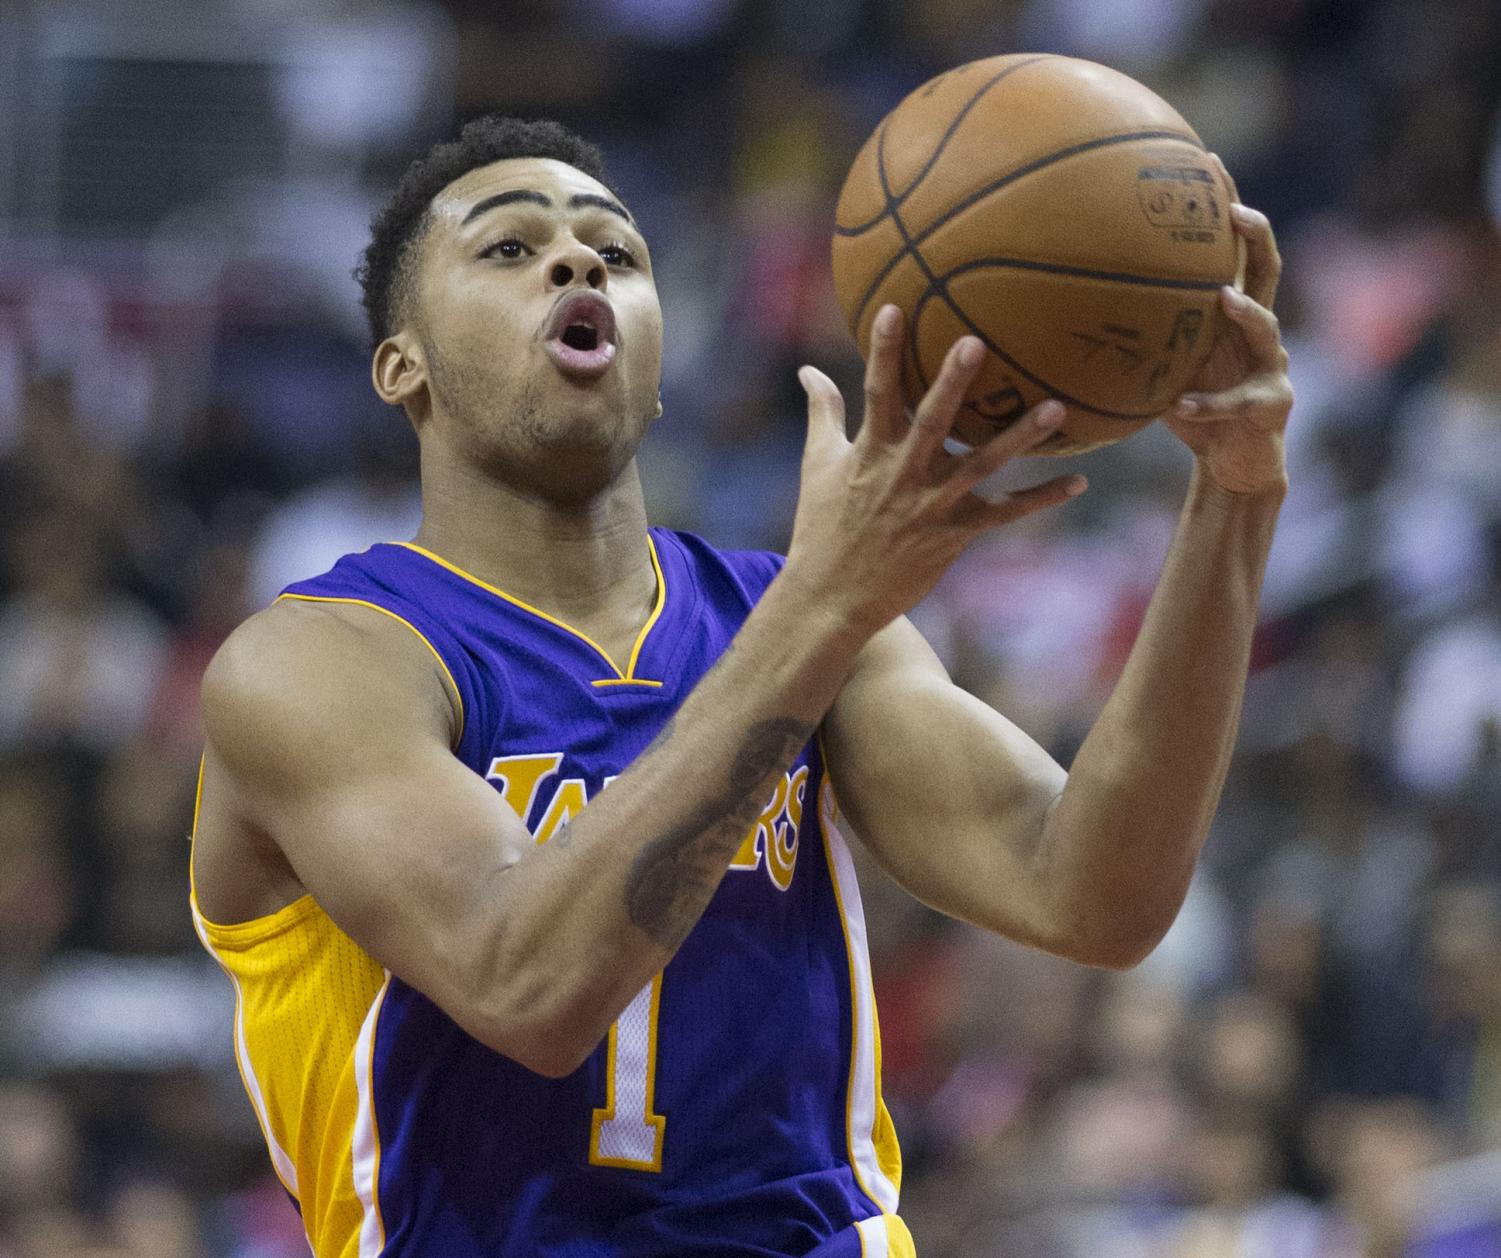 D'Angelo Russell as a Laker against the Washington Wizards on Dec. 2, 2015.